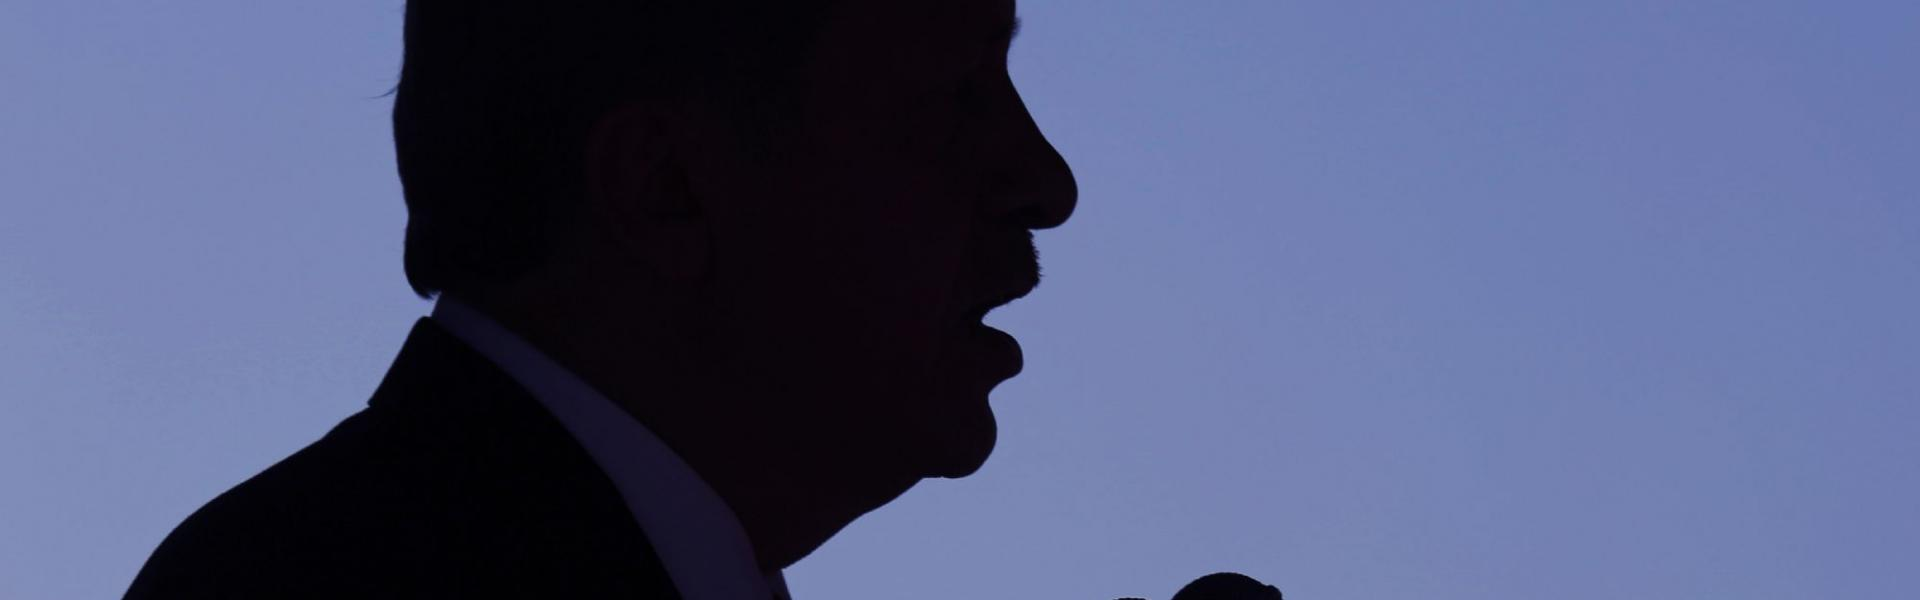 Turkish President Recep Tayyip Erdogan, in silhouette, speaks during during a military parade in 20015.